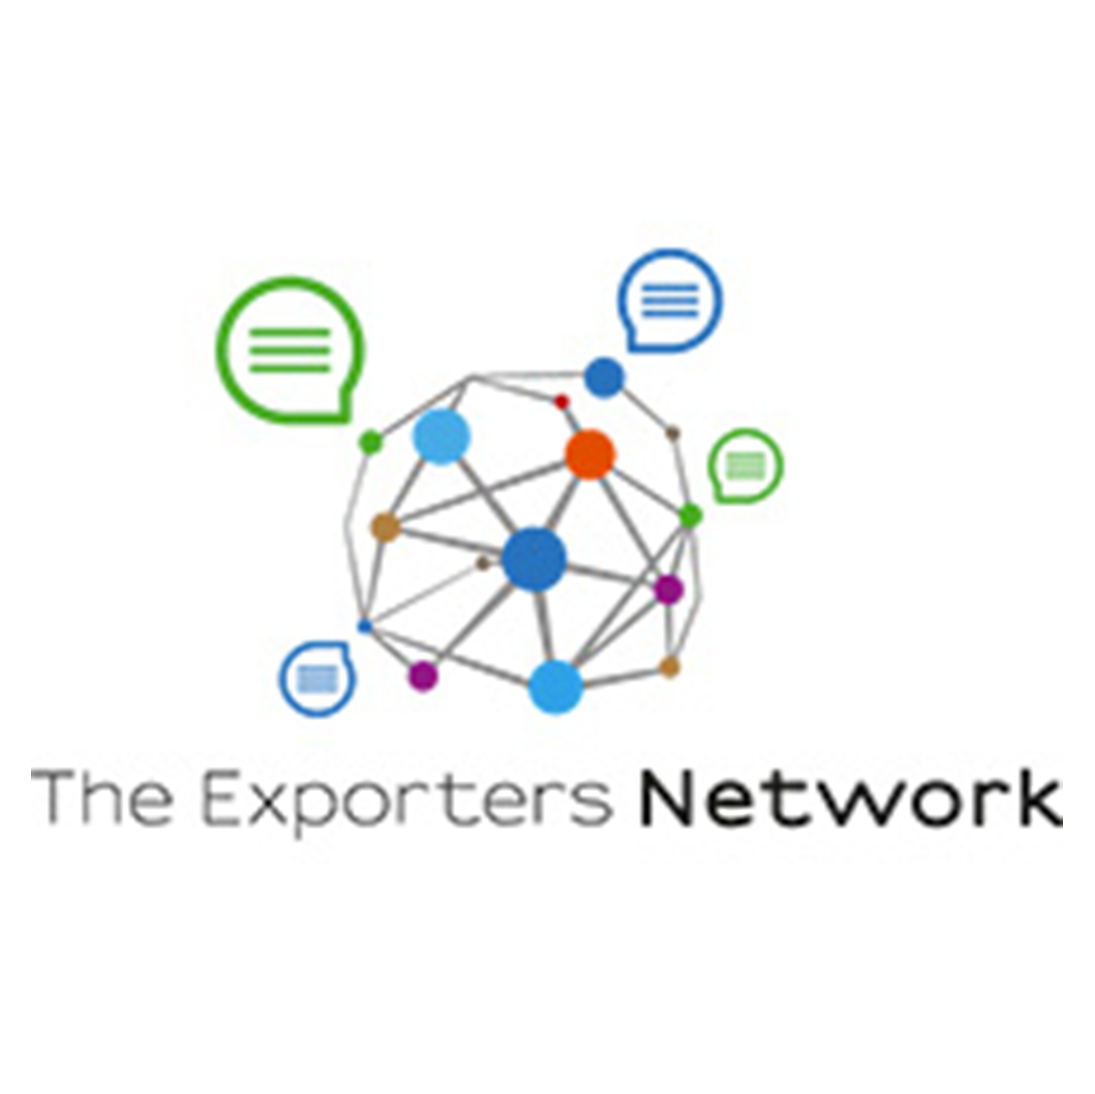 The Exporters Network